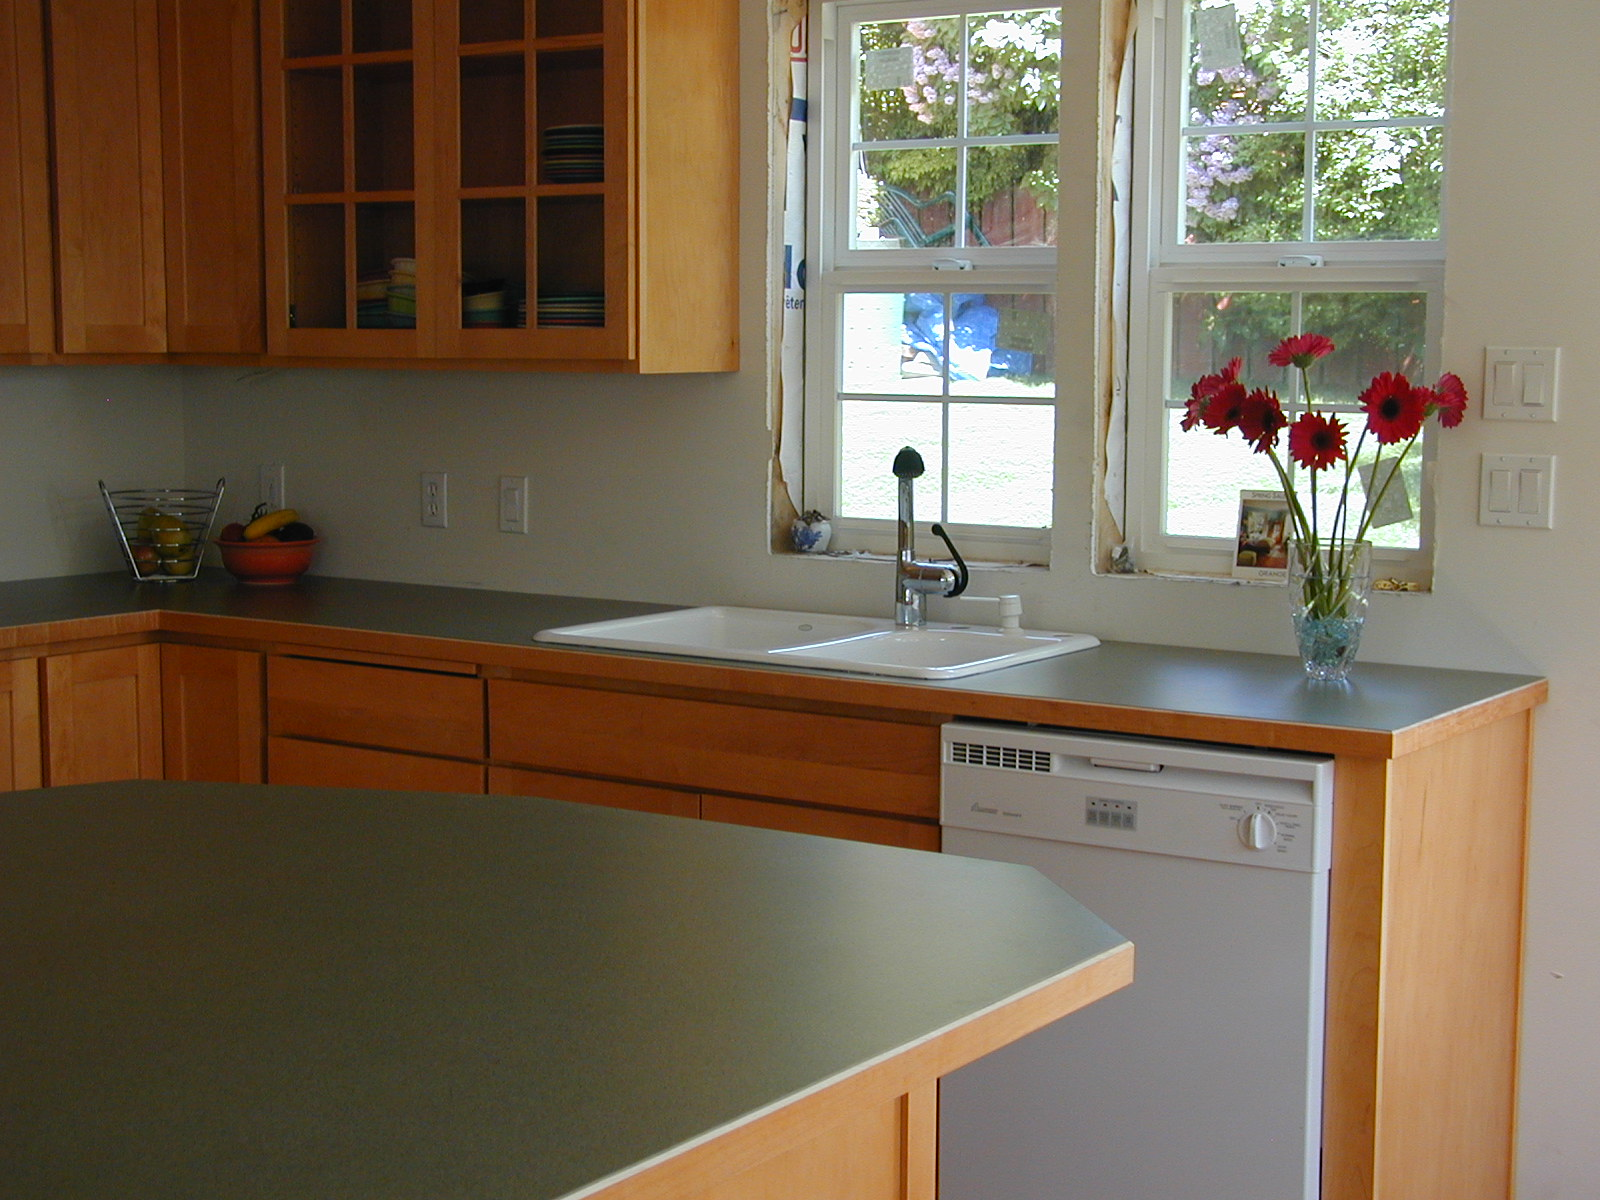 1000 Images About Countertop Ideas On Pinterest